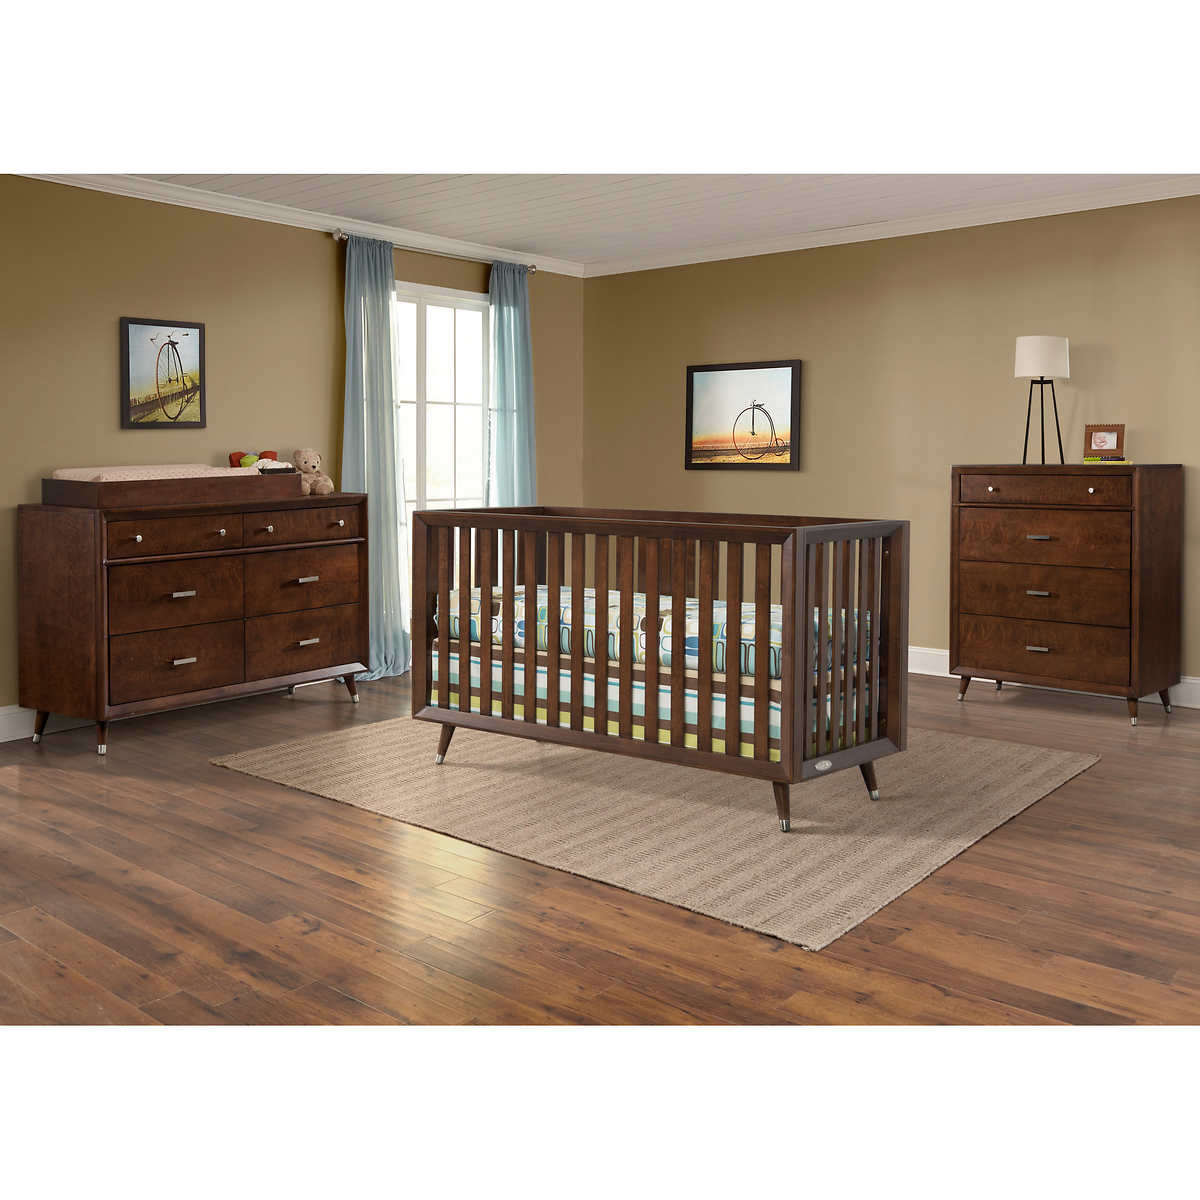 White plastic toddler bed costco - Tremont Euro Crib 4 Piece Nursery Collection Brown